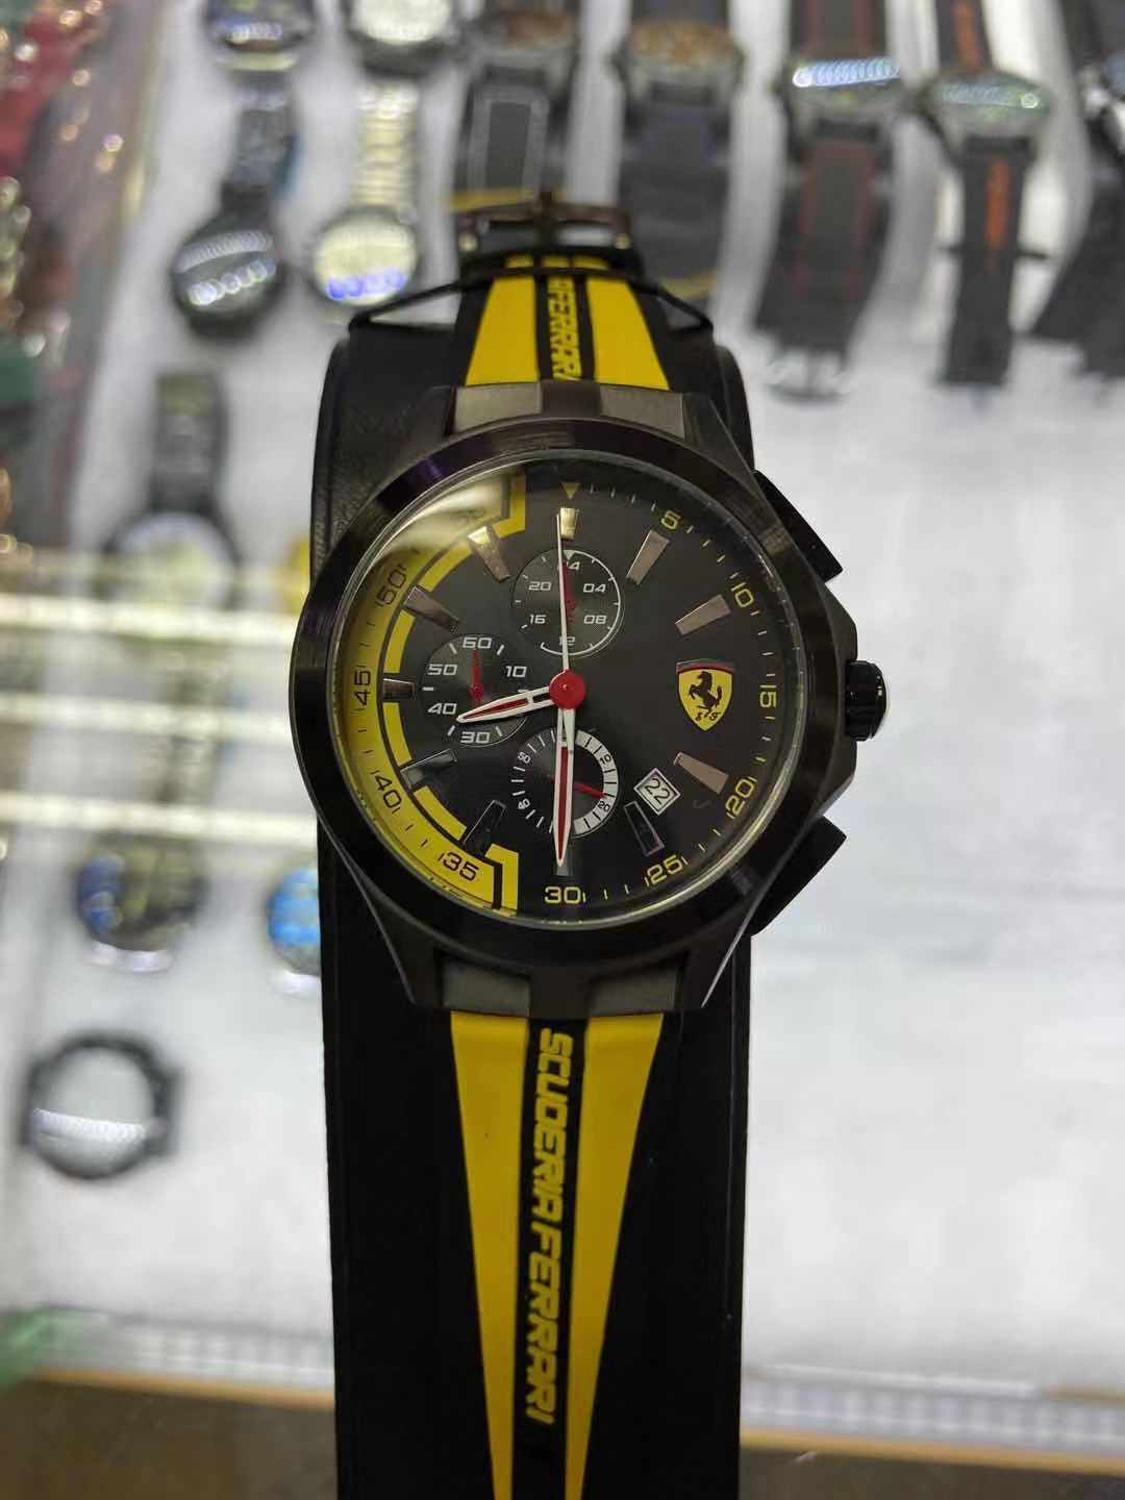 2020 New Arrival FERRARI WORLD Men's Watches Classic Fashion Brand Watches Luxury Sports Men And Women Couple Watches